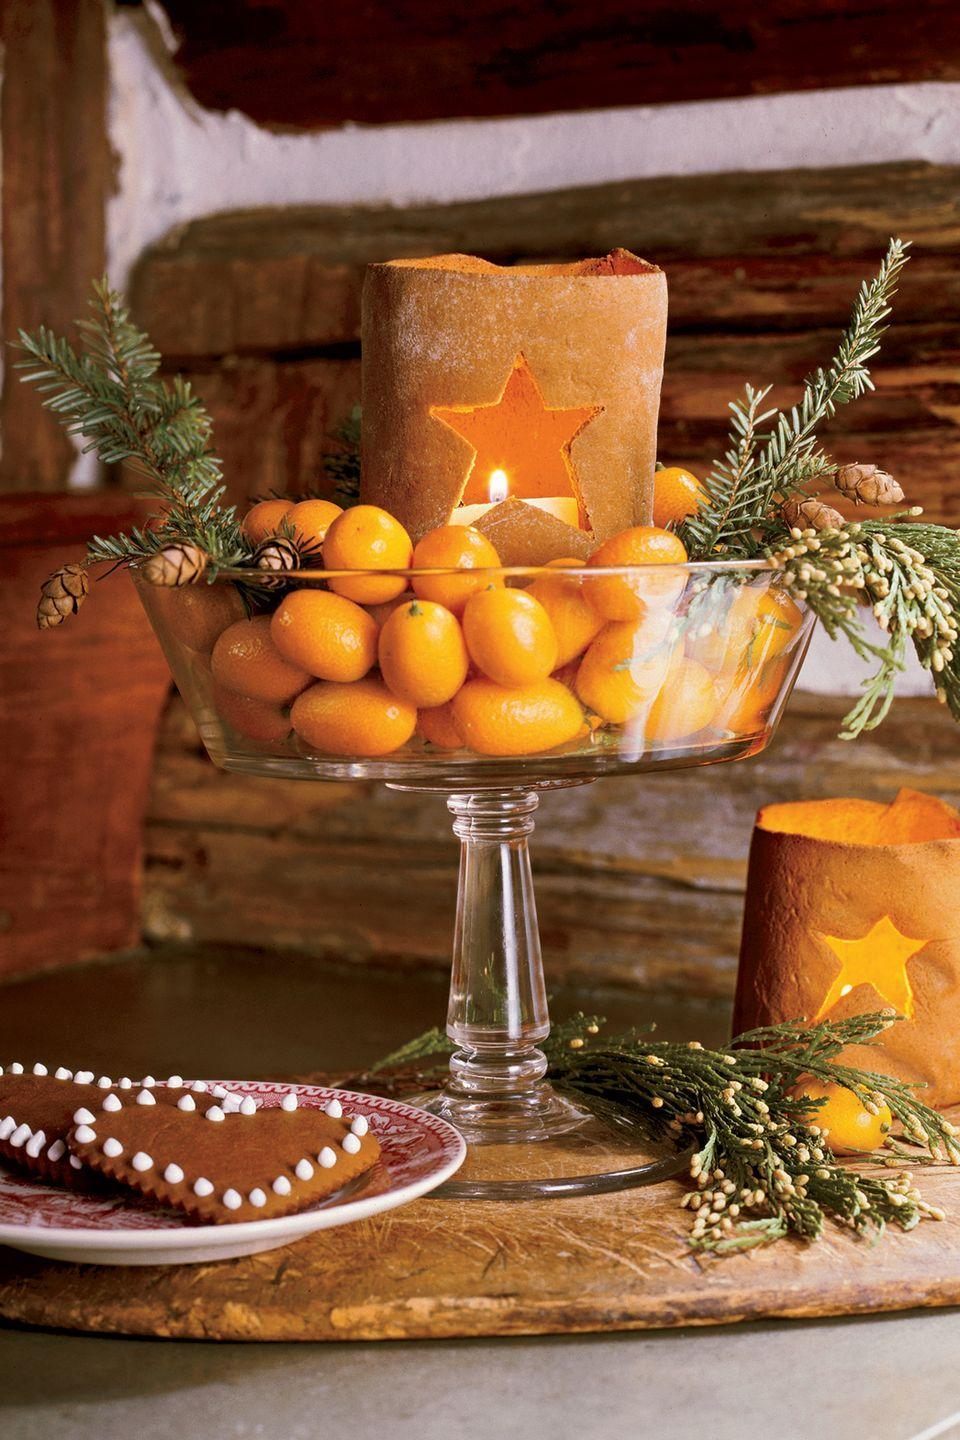 "<p>Fill a glass compote dish with fresh clementines, pine boughs, and candles for a display that smells as good as it looks.</p><p><a class=""link rapid-noclick-resp"" href=""https://go.redirectingat.com?id=74968X1596630&url=https%3A%2F%2Fwww.crateandbarrel.com%2Ffooted-10-oz.-dessert-dish%2Fs465291&sref=https%3A%2F%2Fwww.countryliving.com%2Fdiy-crafts%2Fg644%2Fchristmas-tables-1208%2F"" rel=""nofollow noopener"" target=""_blank"" data-ylk=""slk:SHOP COMPOTE DISHES"">SHOP COMPOTE DISHES</a></p>"